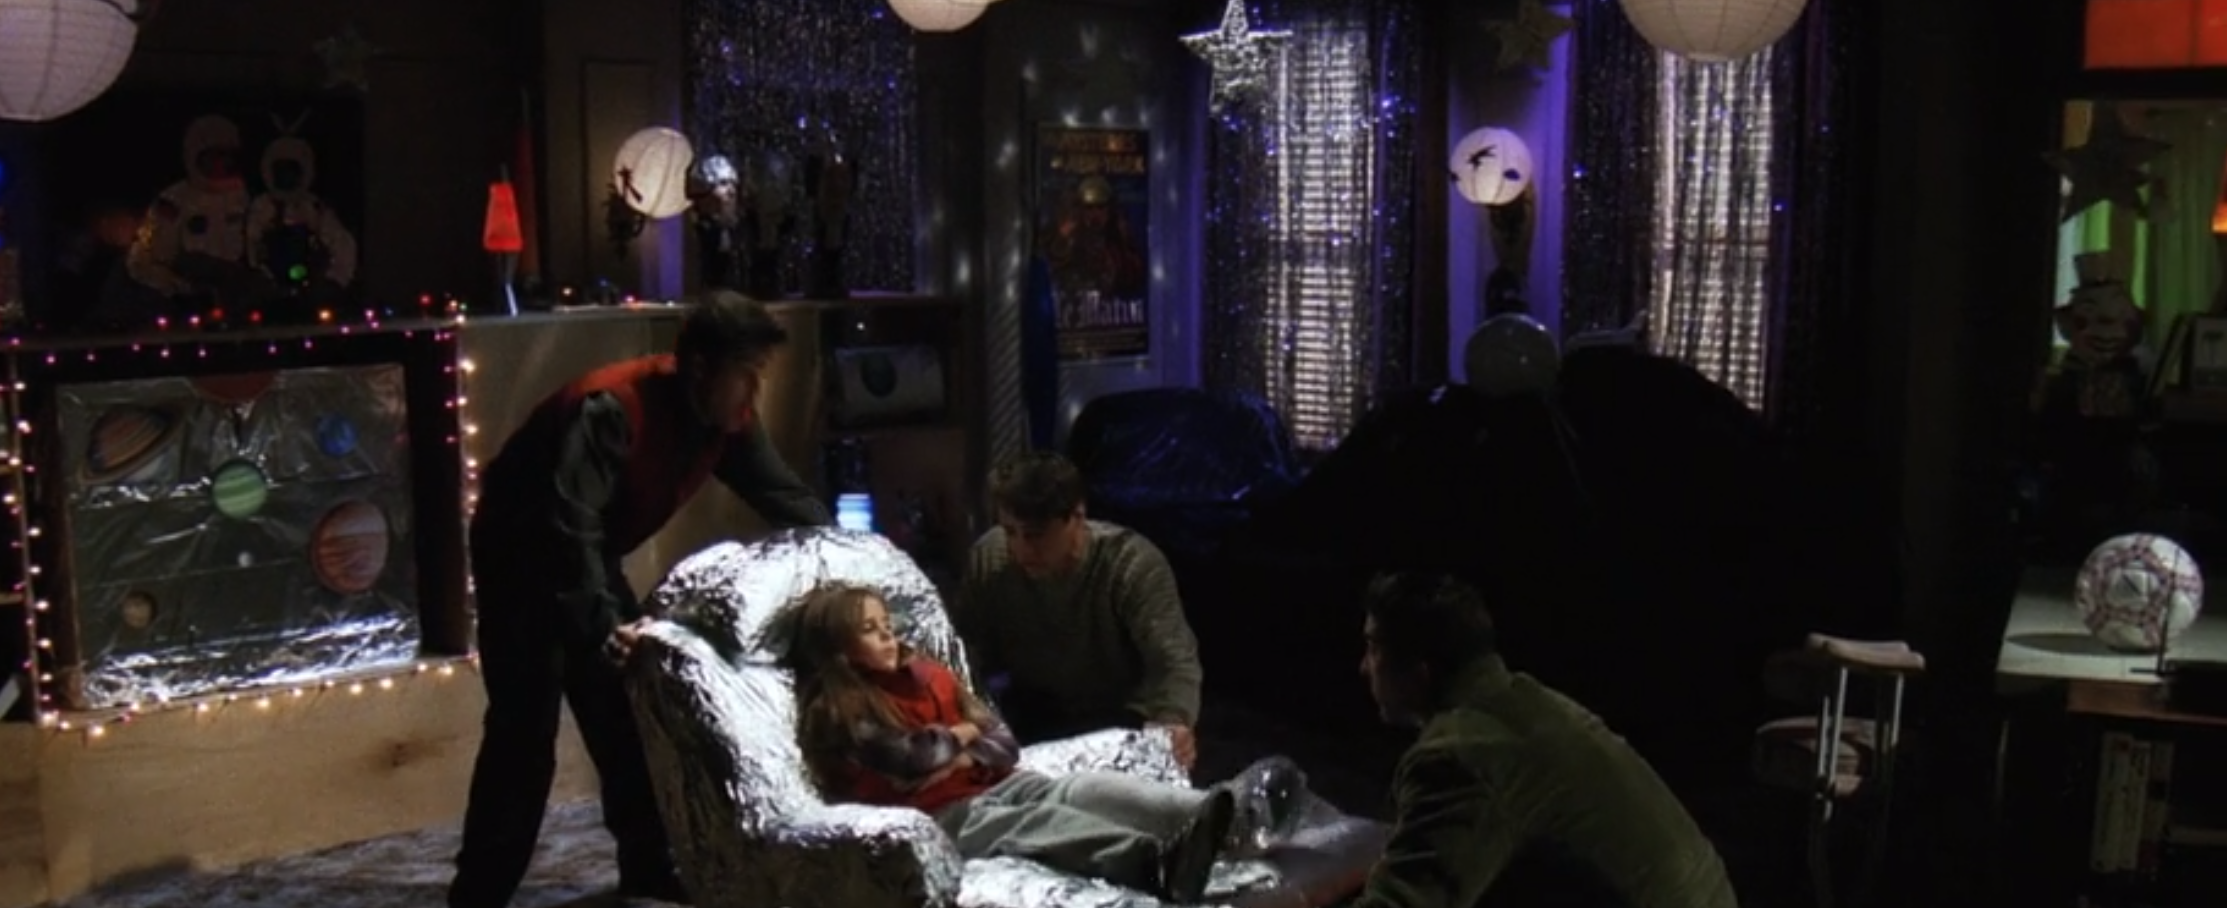 Chandler, Joey, and Ross help a little girl into a tin foil covered arm chair